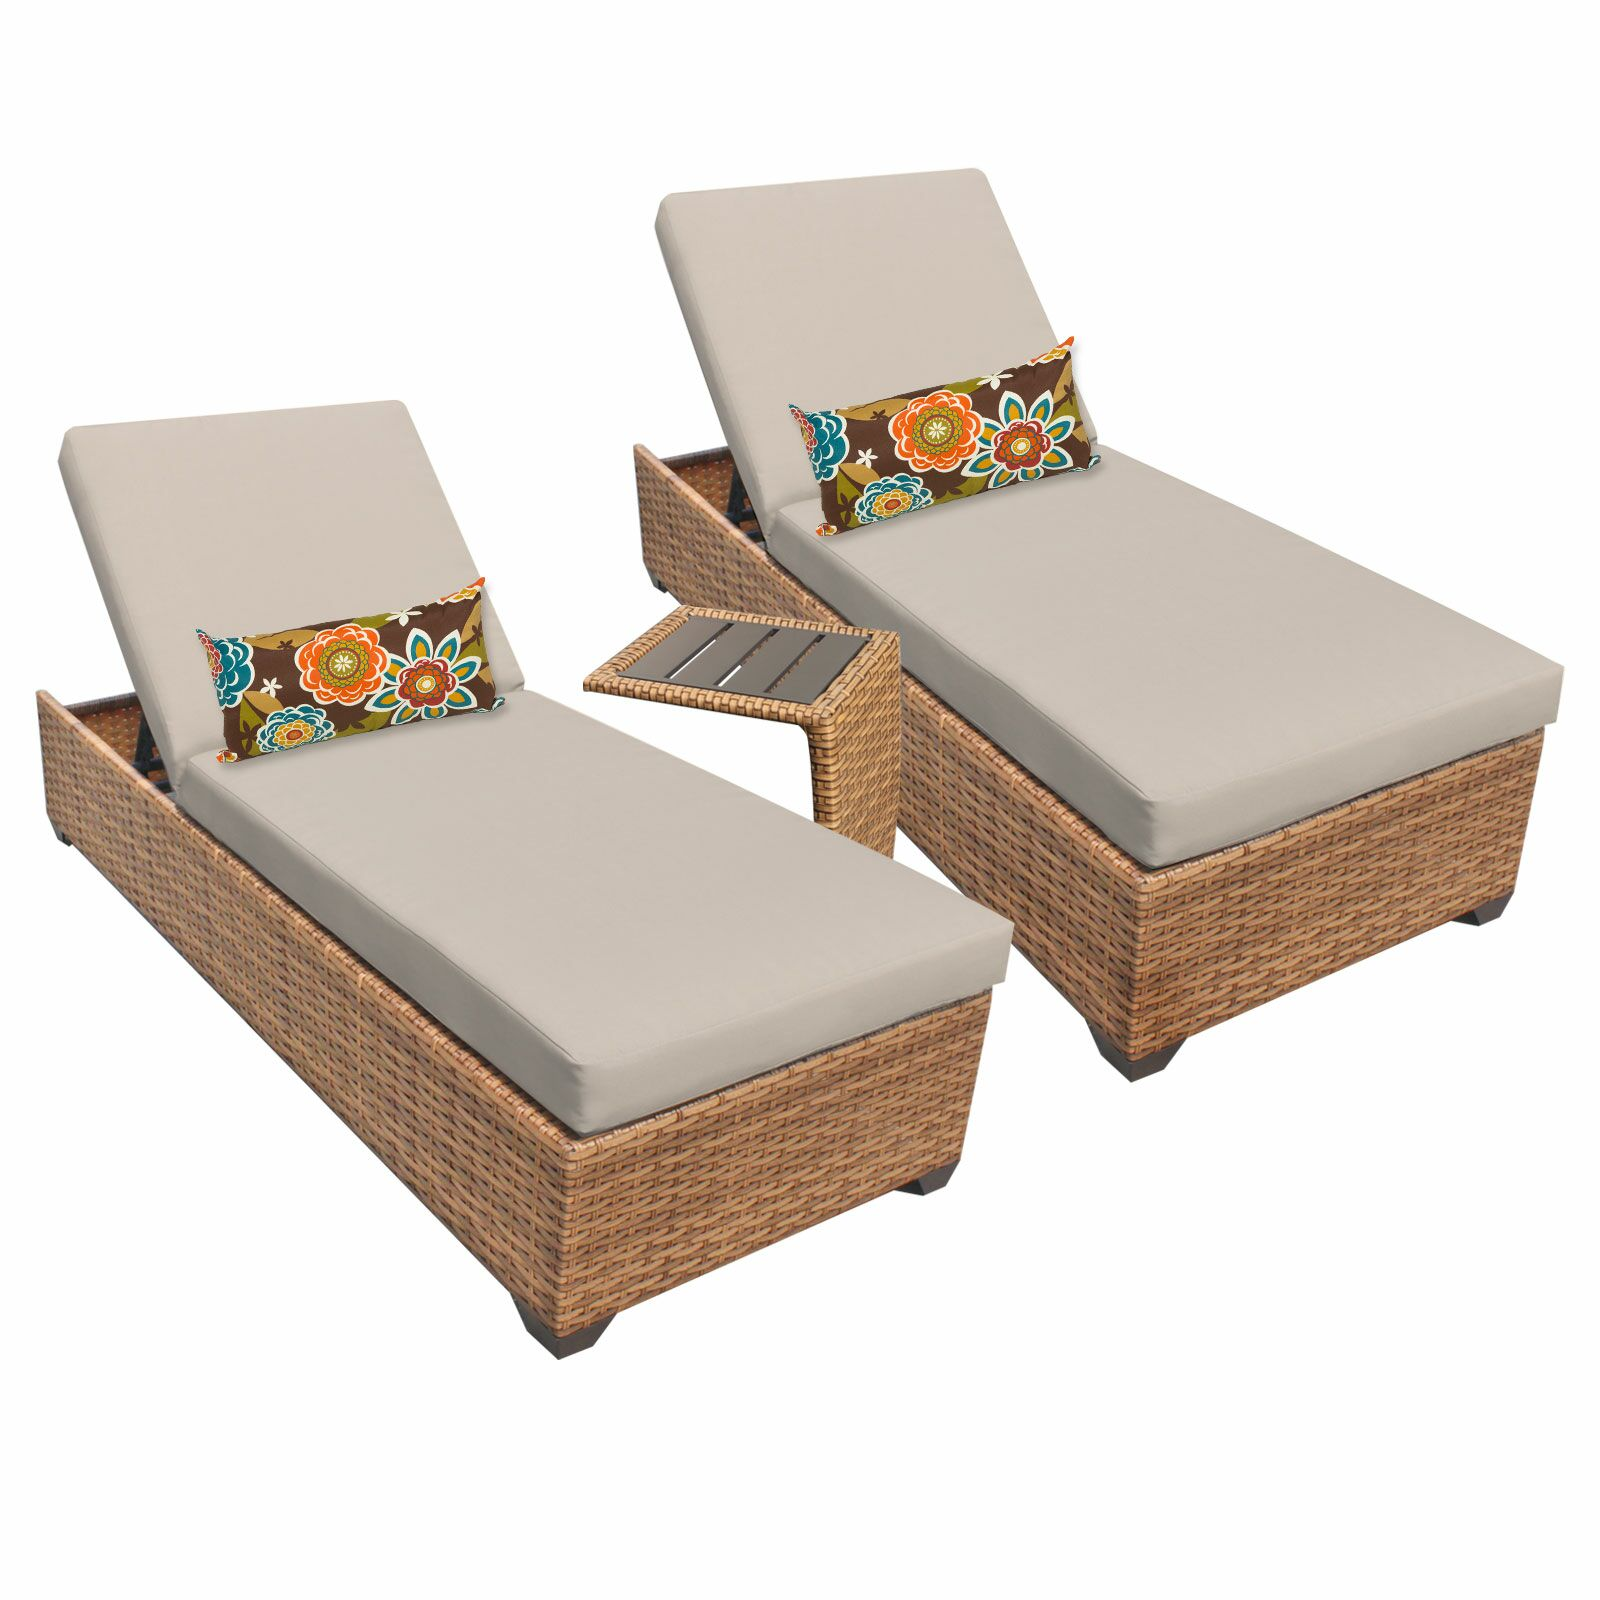 Asellus 3 Piece Chaise Lounge Set with Cushion Color: Beige